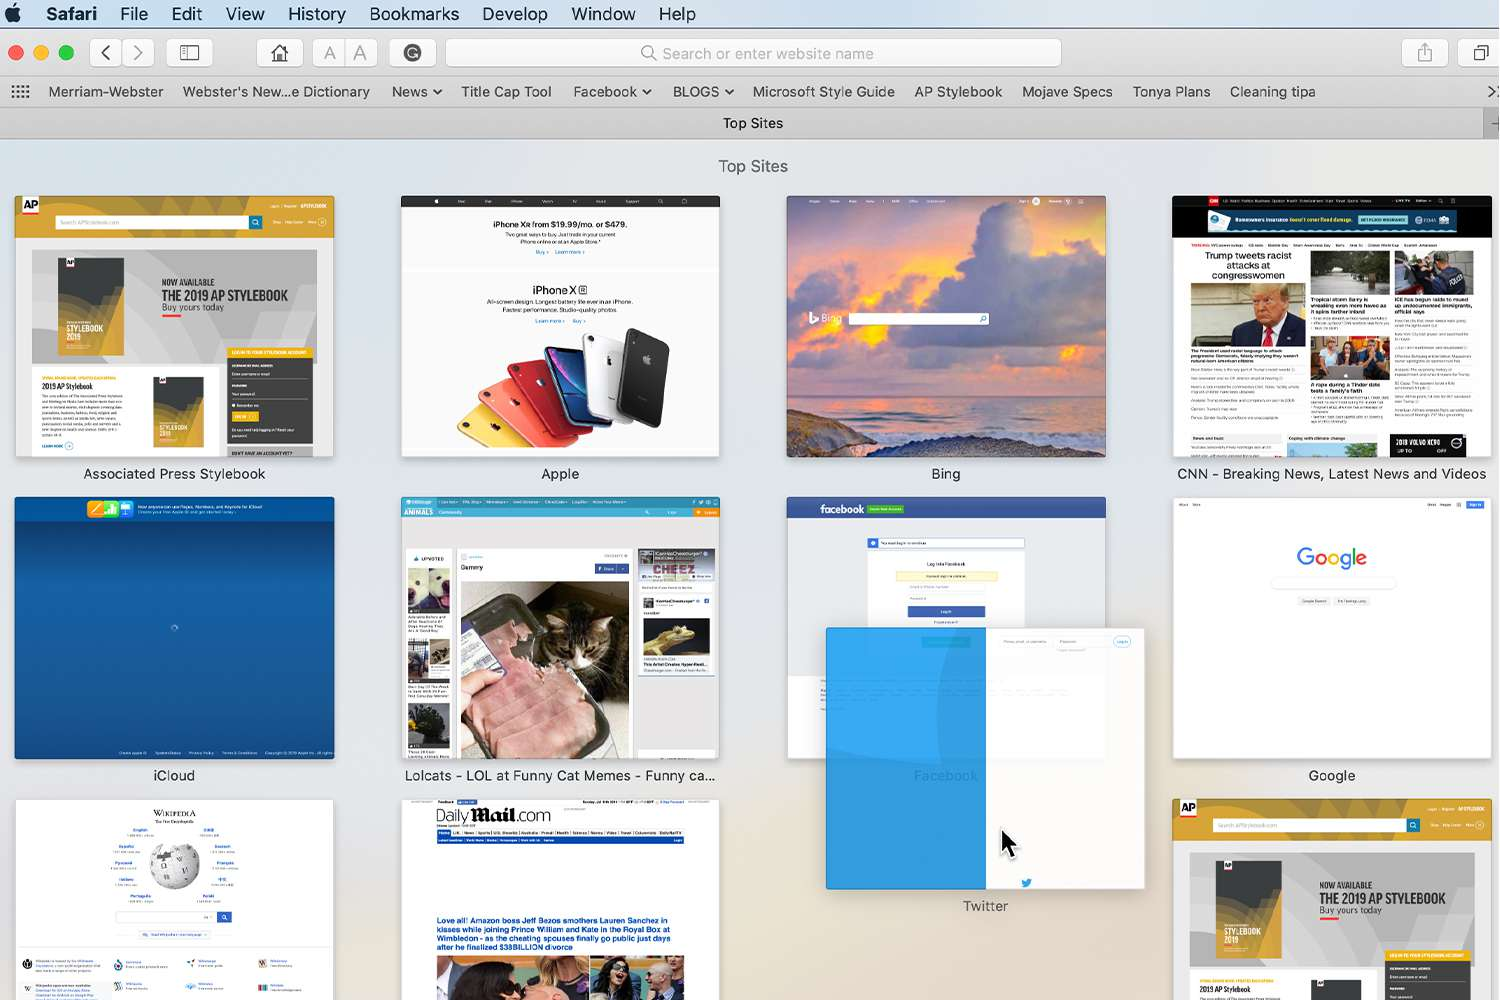 Safari Top Sites showing rearrangement of thumbnails by clicking and dragging